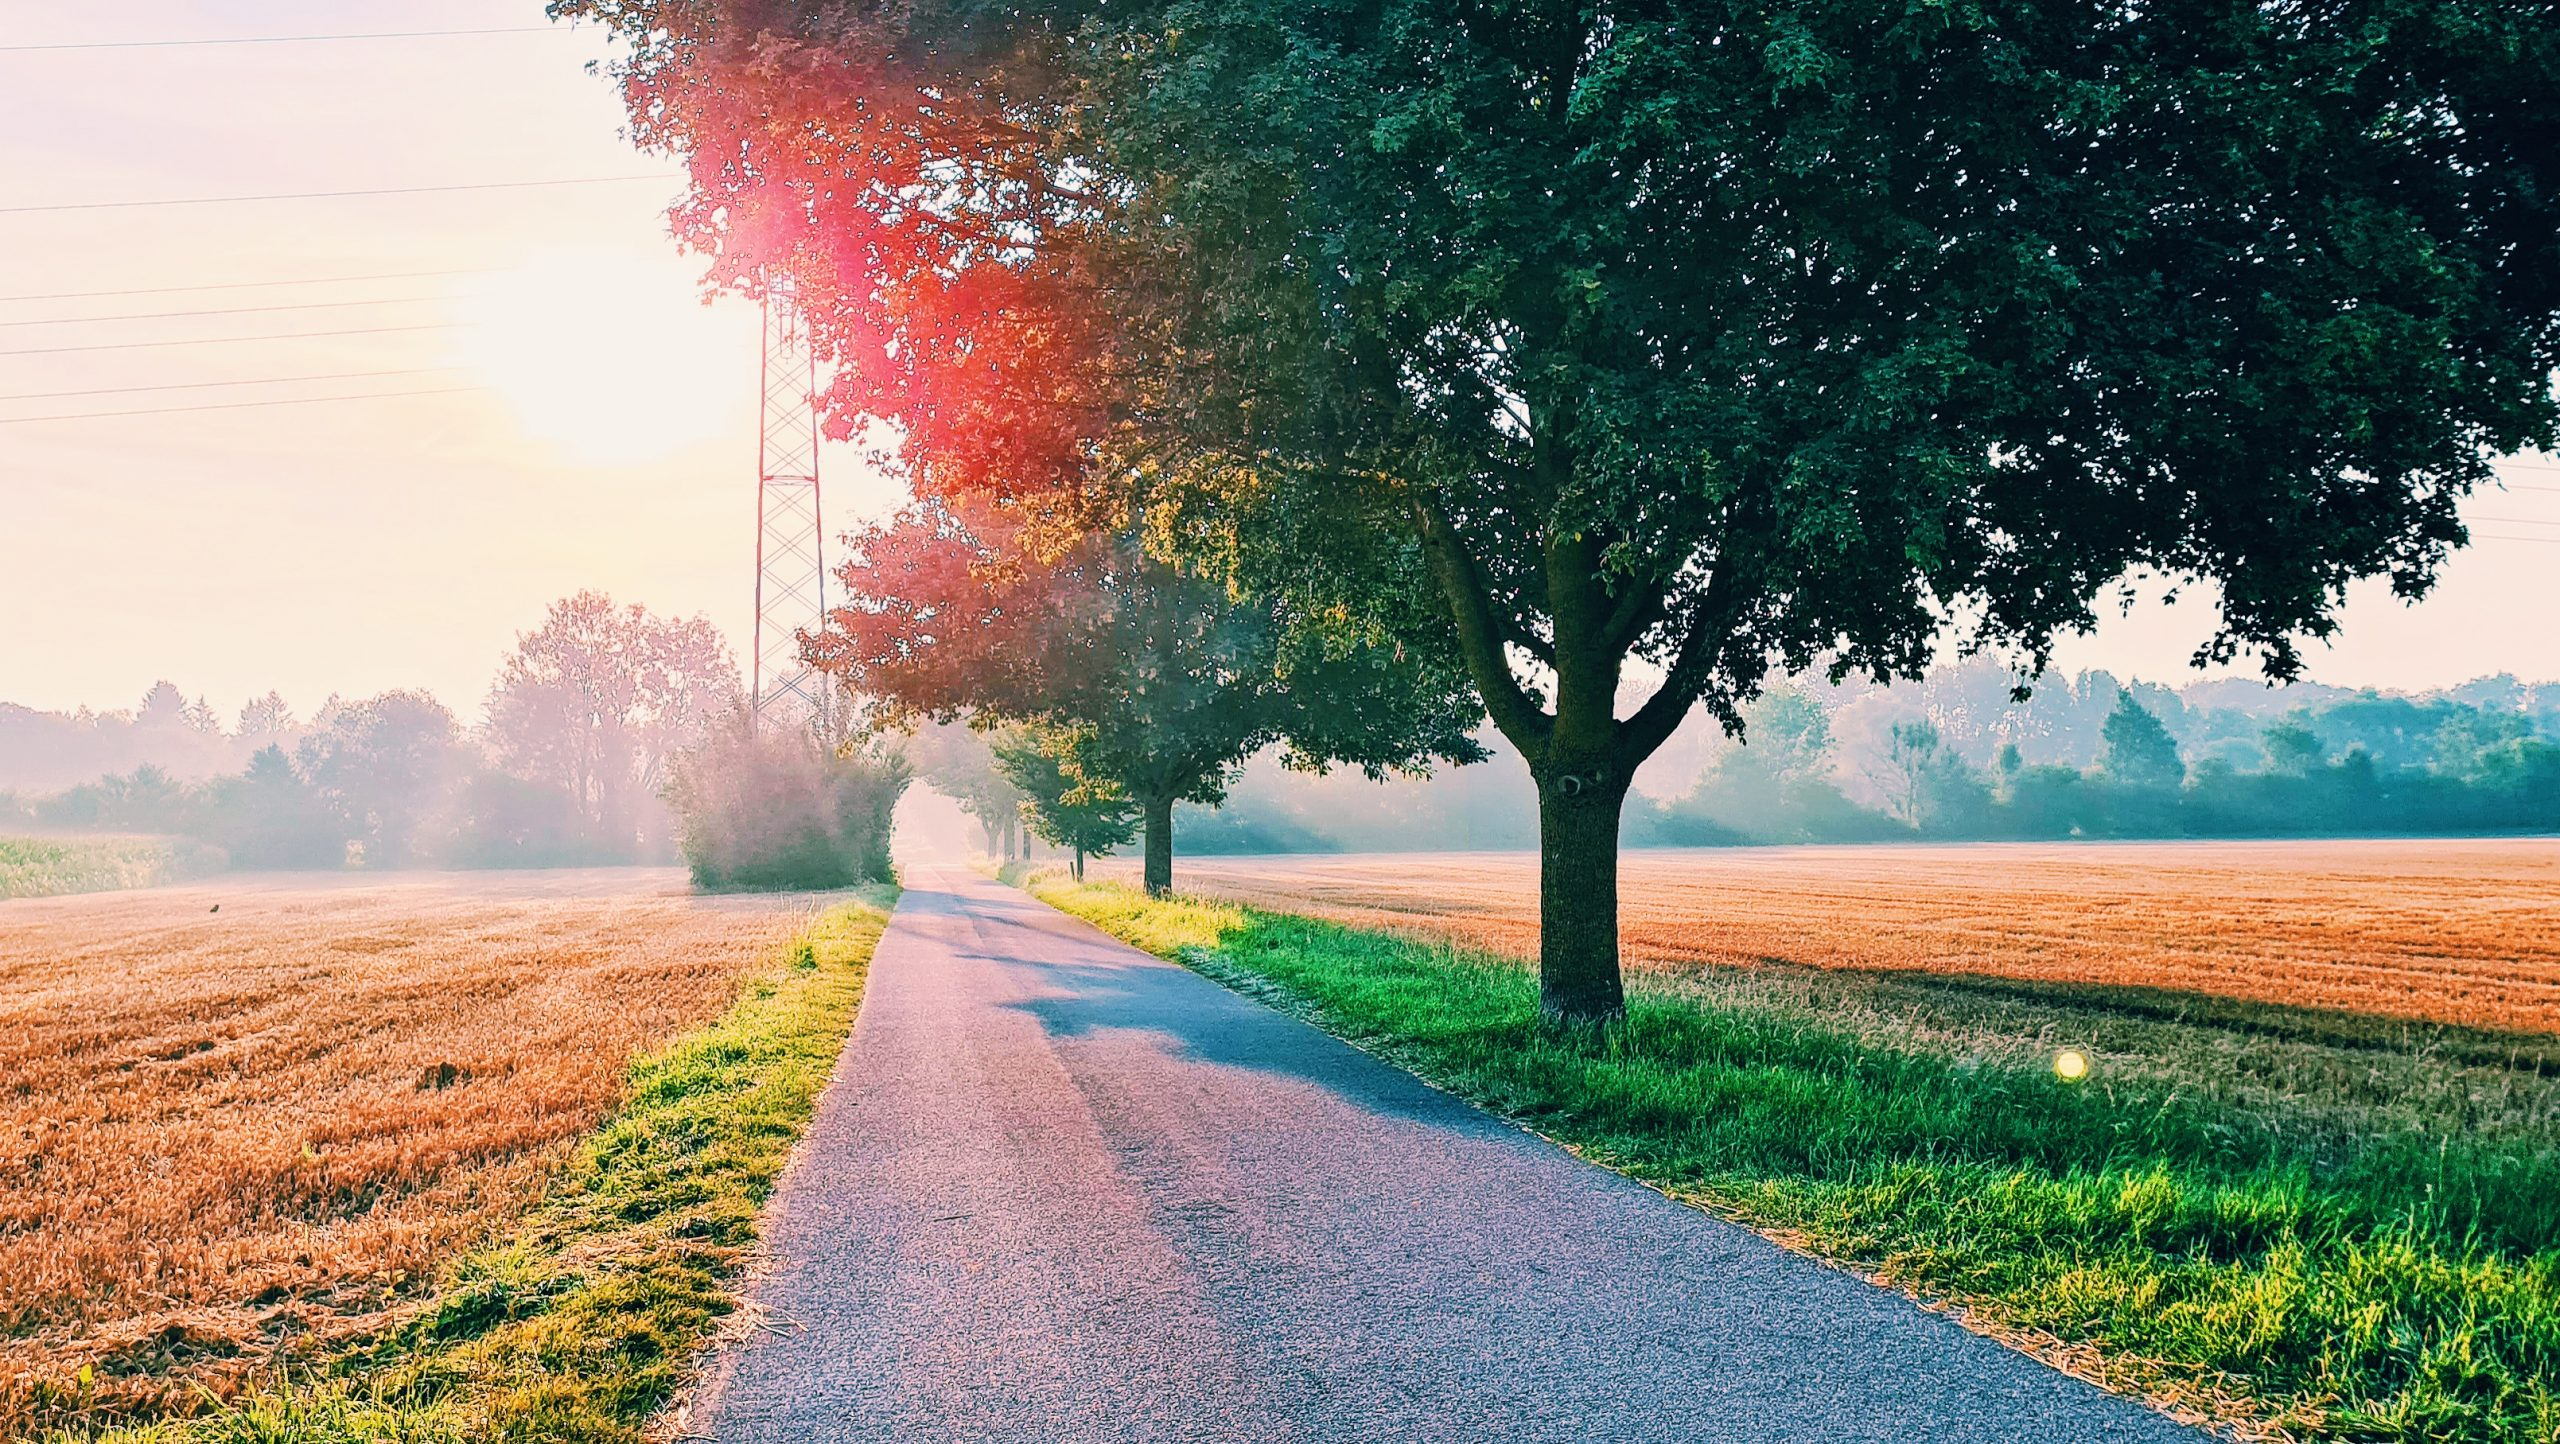 A sunrise appears low over the horizon with a long empty road ahead and a bright green tree in the foreground